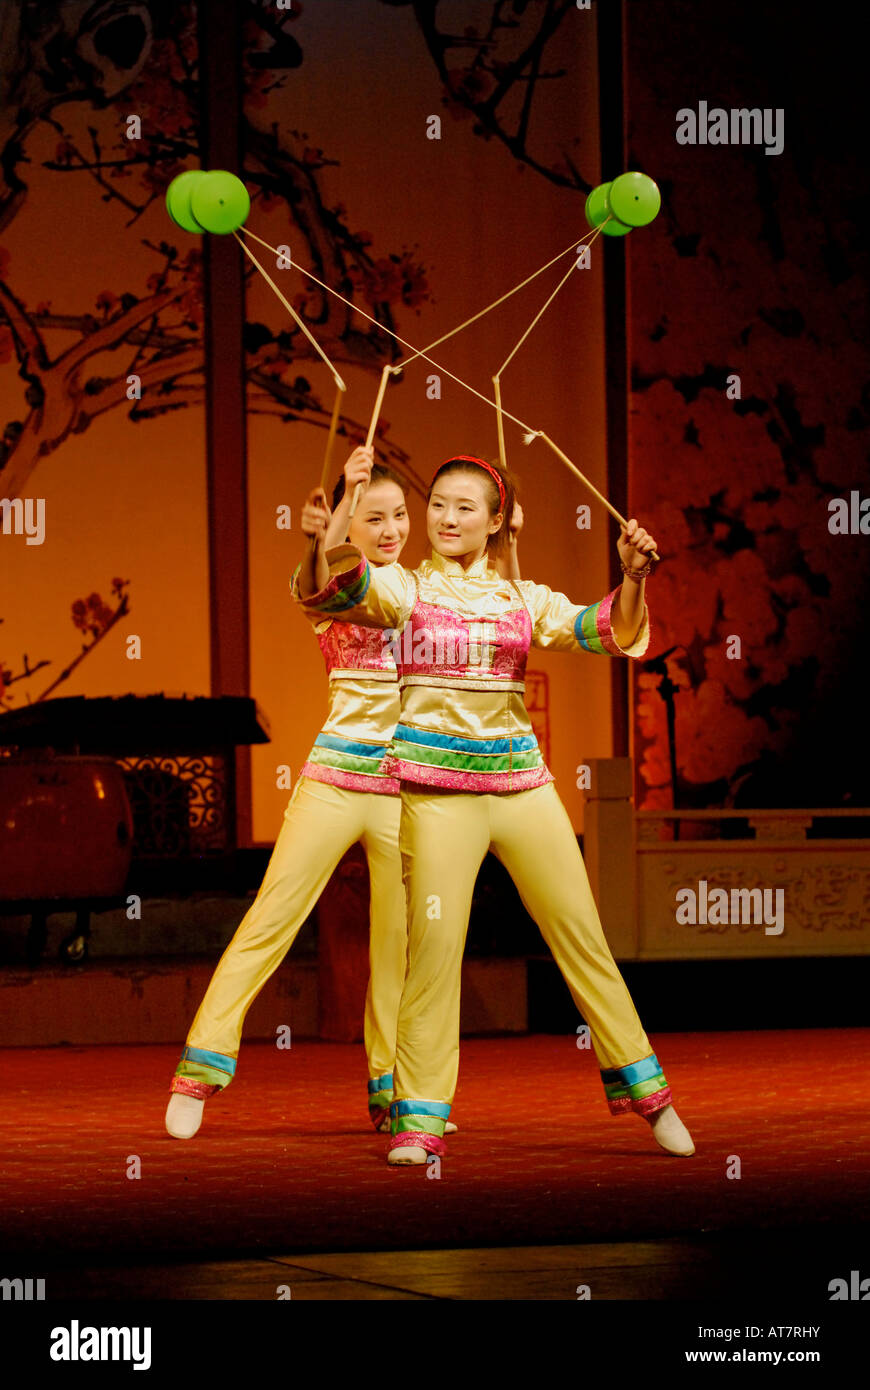 Acrobatic performers juggle spools on strings at Sichuan Opera Chengdu China - Stock Image